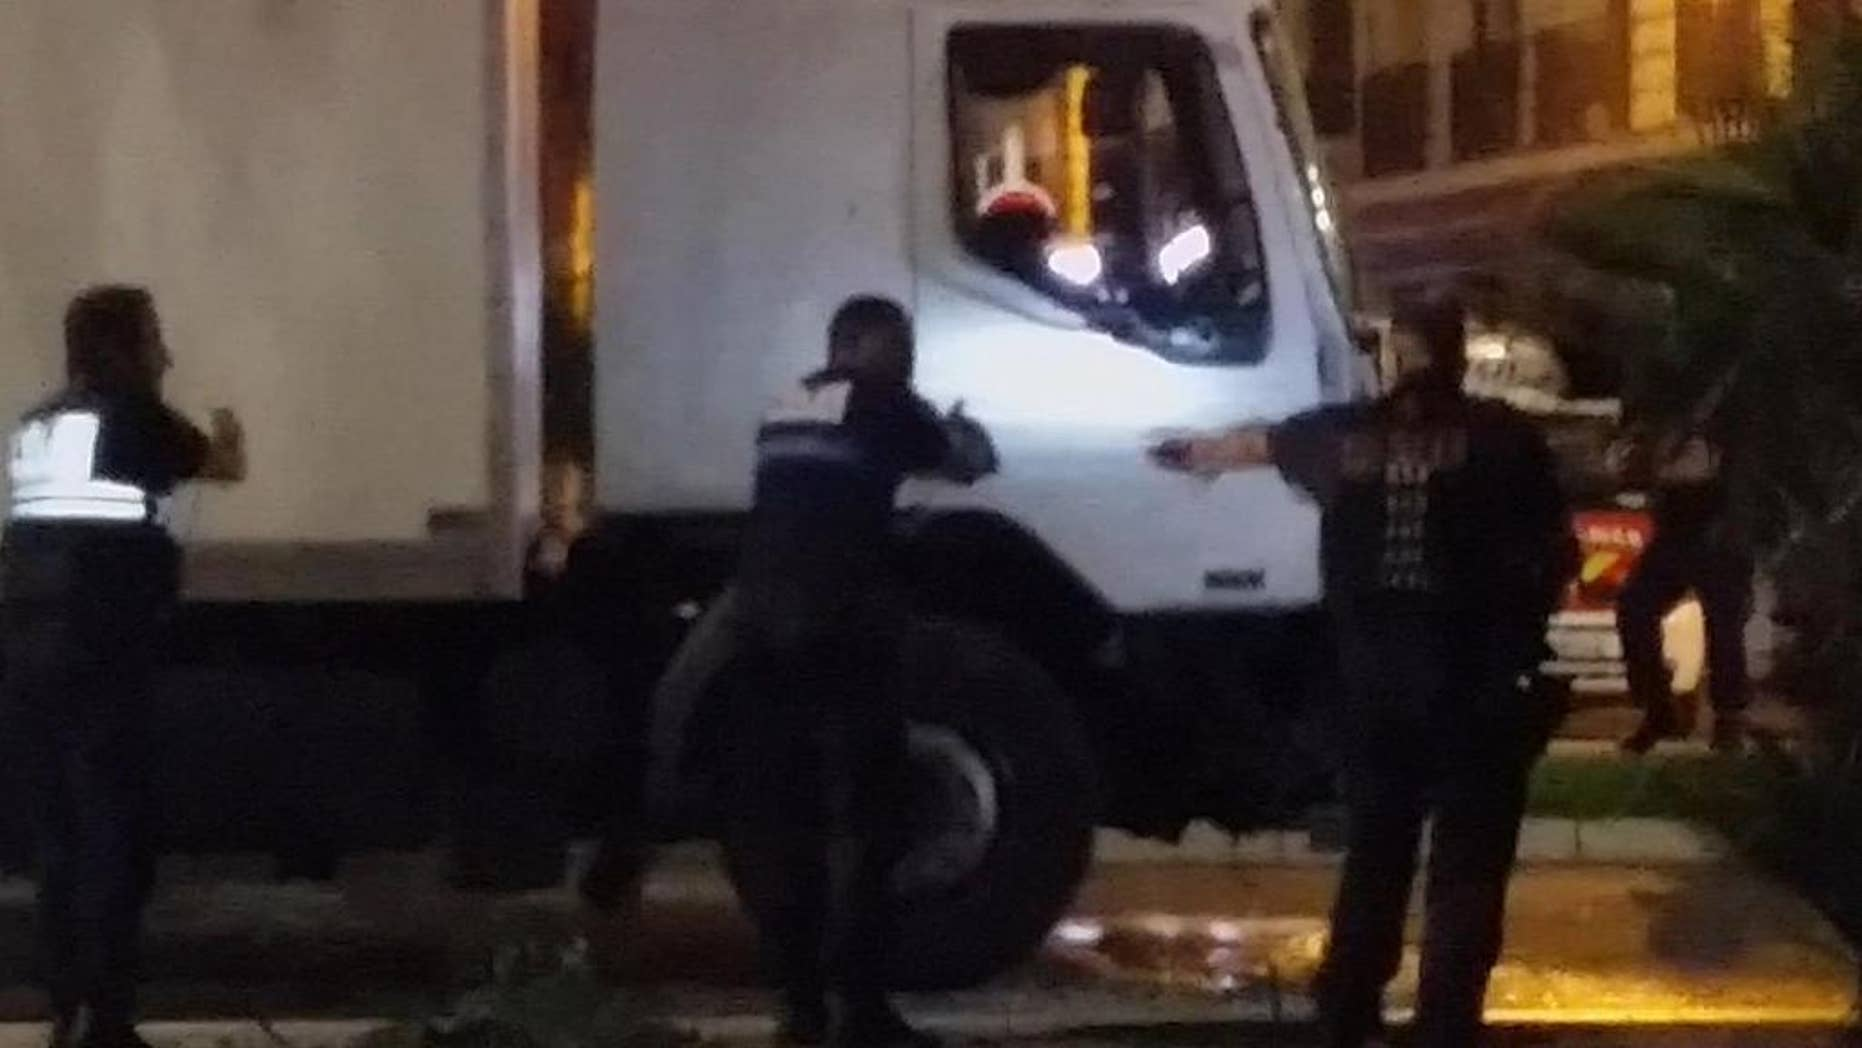 FILE - Police approach the cab of a truck driven by Mohamed Lahouaiyej Bouhlel, a Tunisian who plowed through a crowded promenade, killing at least 84 people in Nice, France, in this July 14, 2016, file photo. Bouhlel's family and neighbors say he was indifferent to religion, but French authorities have linked the attack to Islamic State. (NADER EL SHAFEI via AP, File) MANDATORY CREDIT